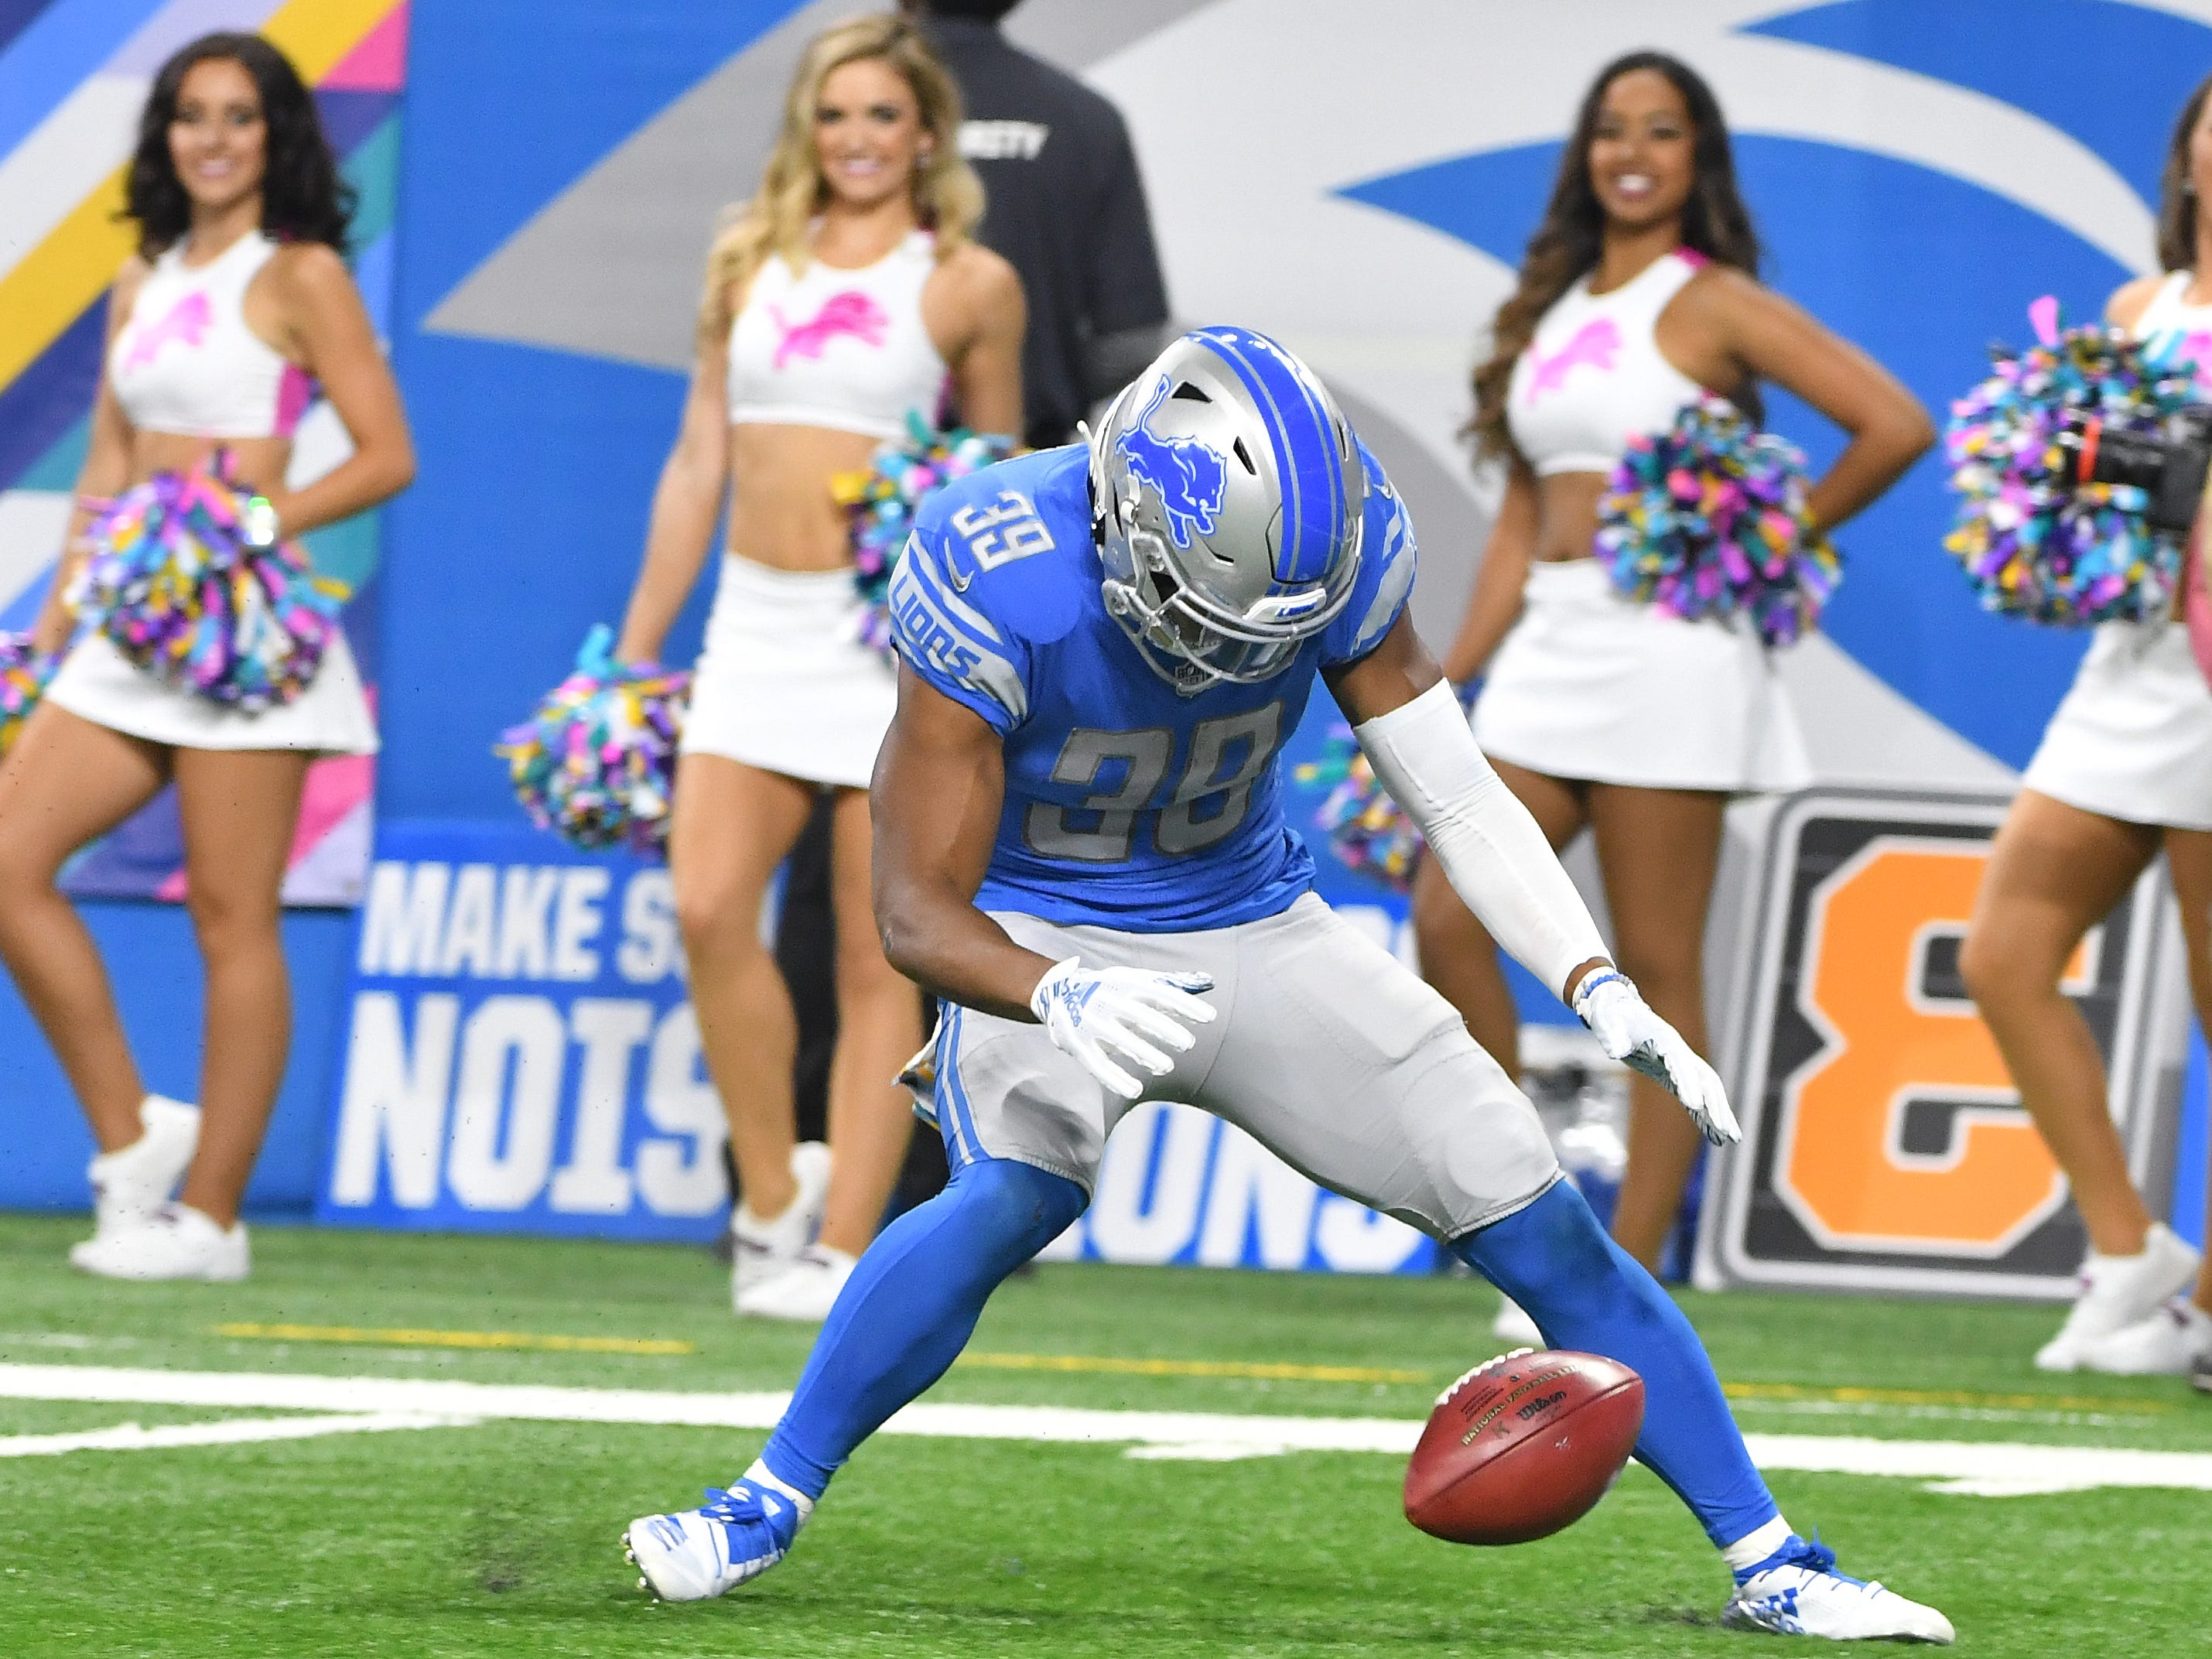 Lions' Jamal Agnew recovers a punt that hits a Green Bay player giving Detroit the ball within the 5 yard line in the first quarter.